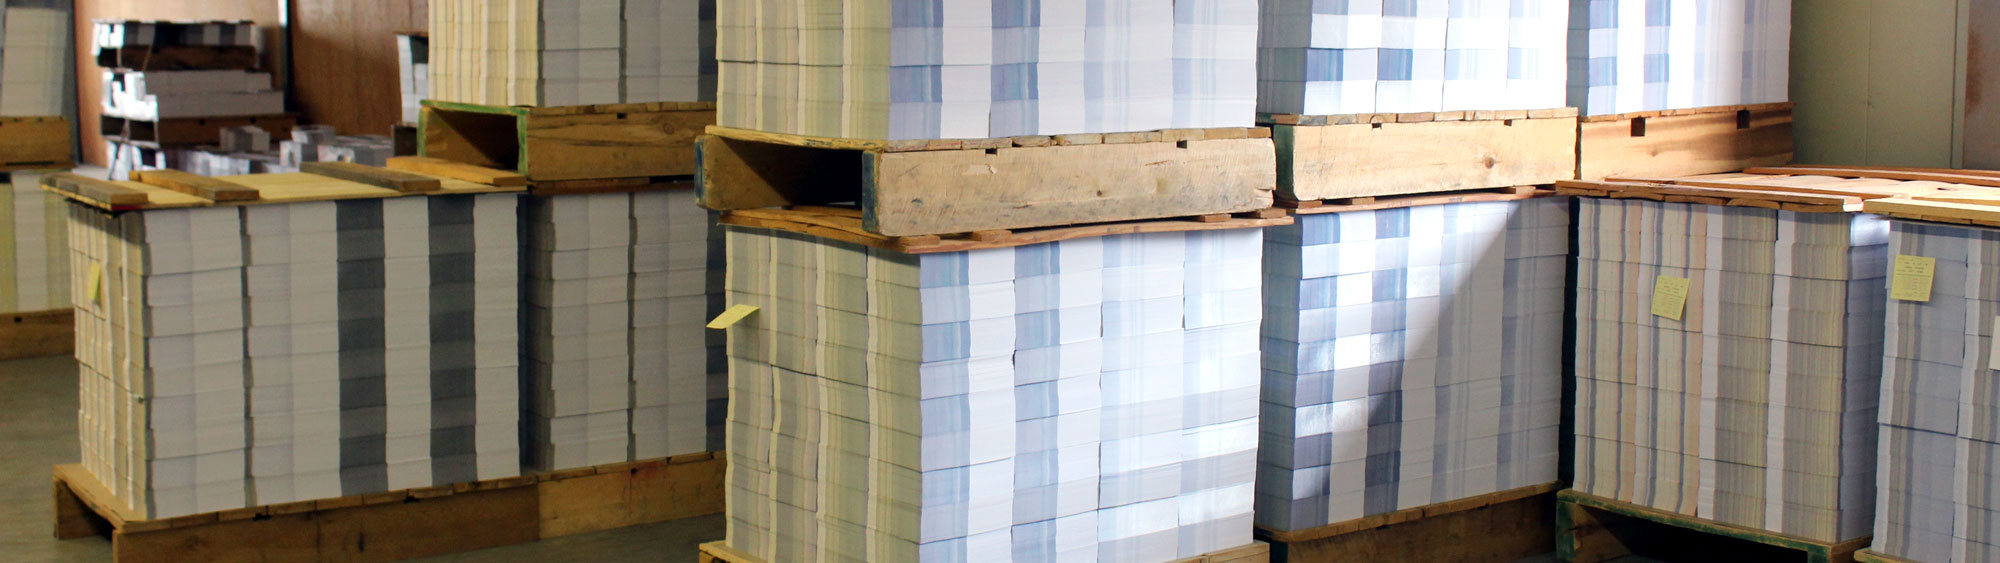 Palletized stacks of pre-printed weekly church bulletins awaiting shipment at Cathedral Press in Long Prairie, MN